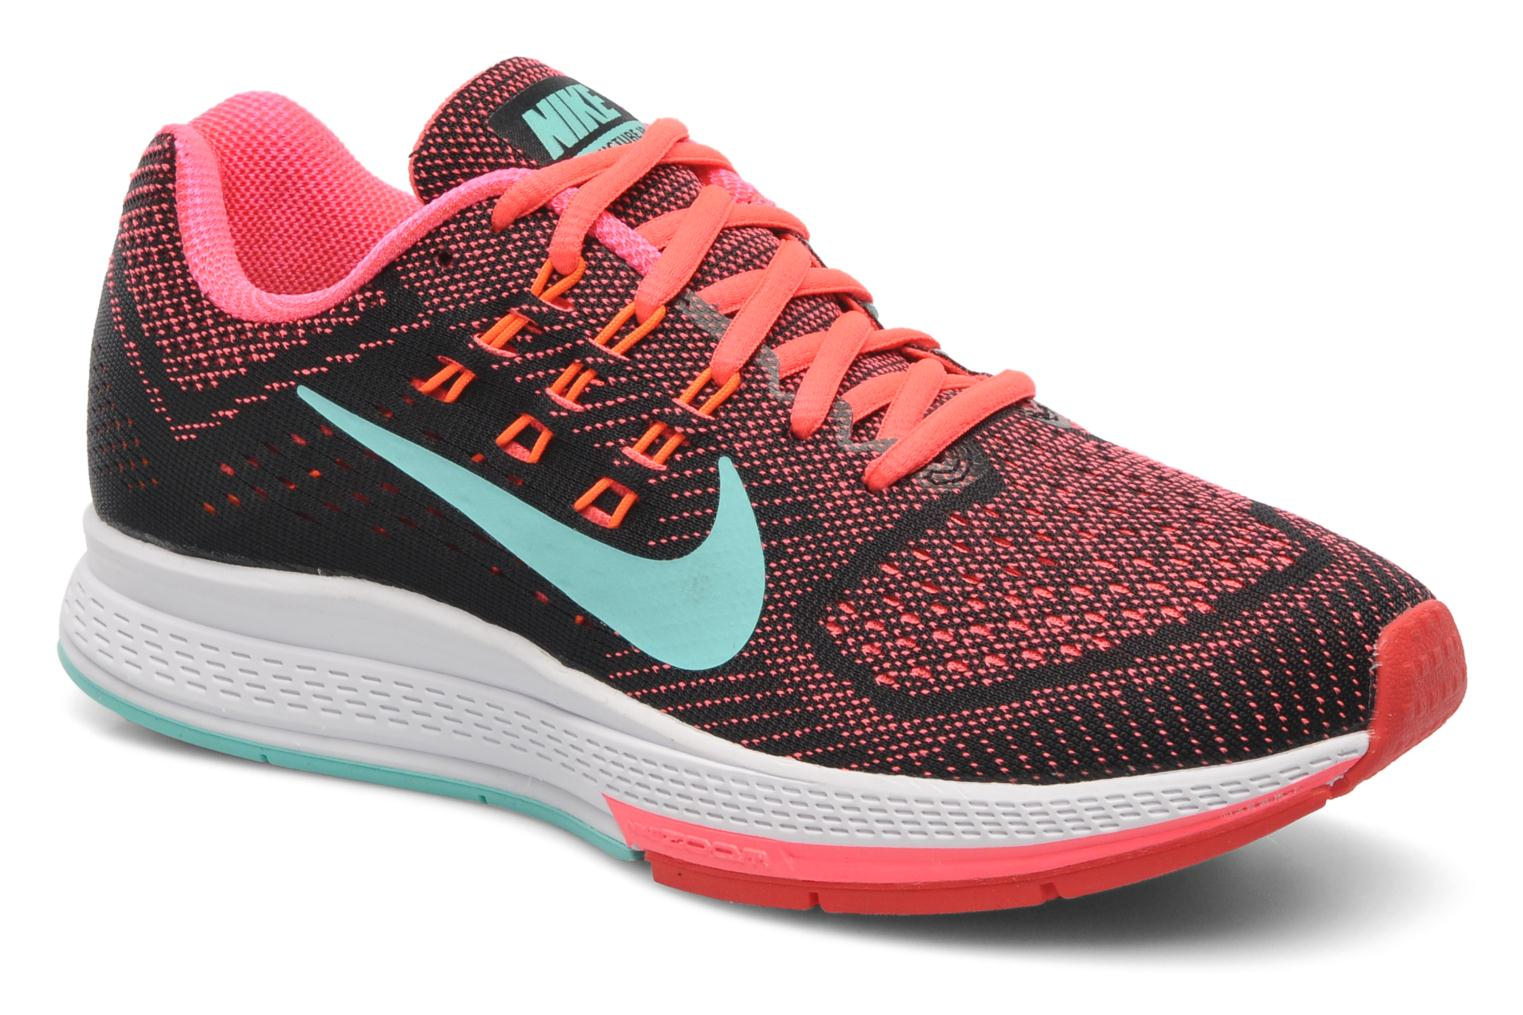 best sneakers 242d8 b54df ... Sport shoes Nike W Nike Air Zoom Structure 18 Pink detailed view Pair  view ...